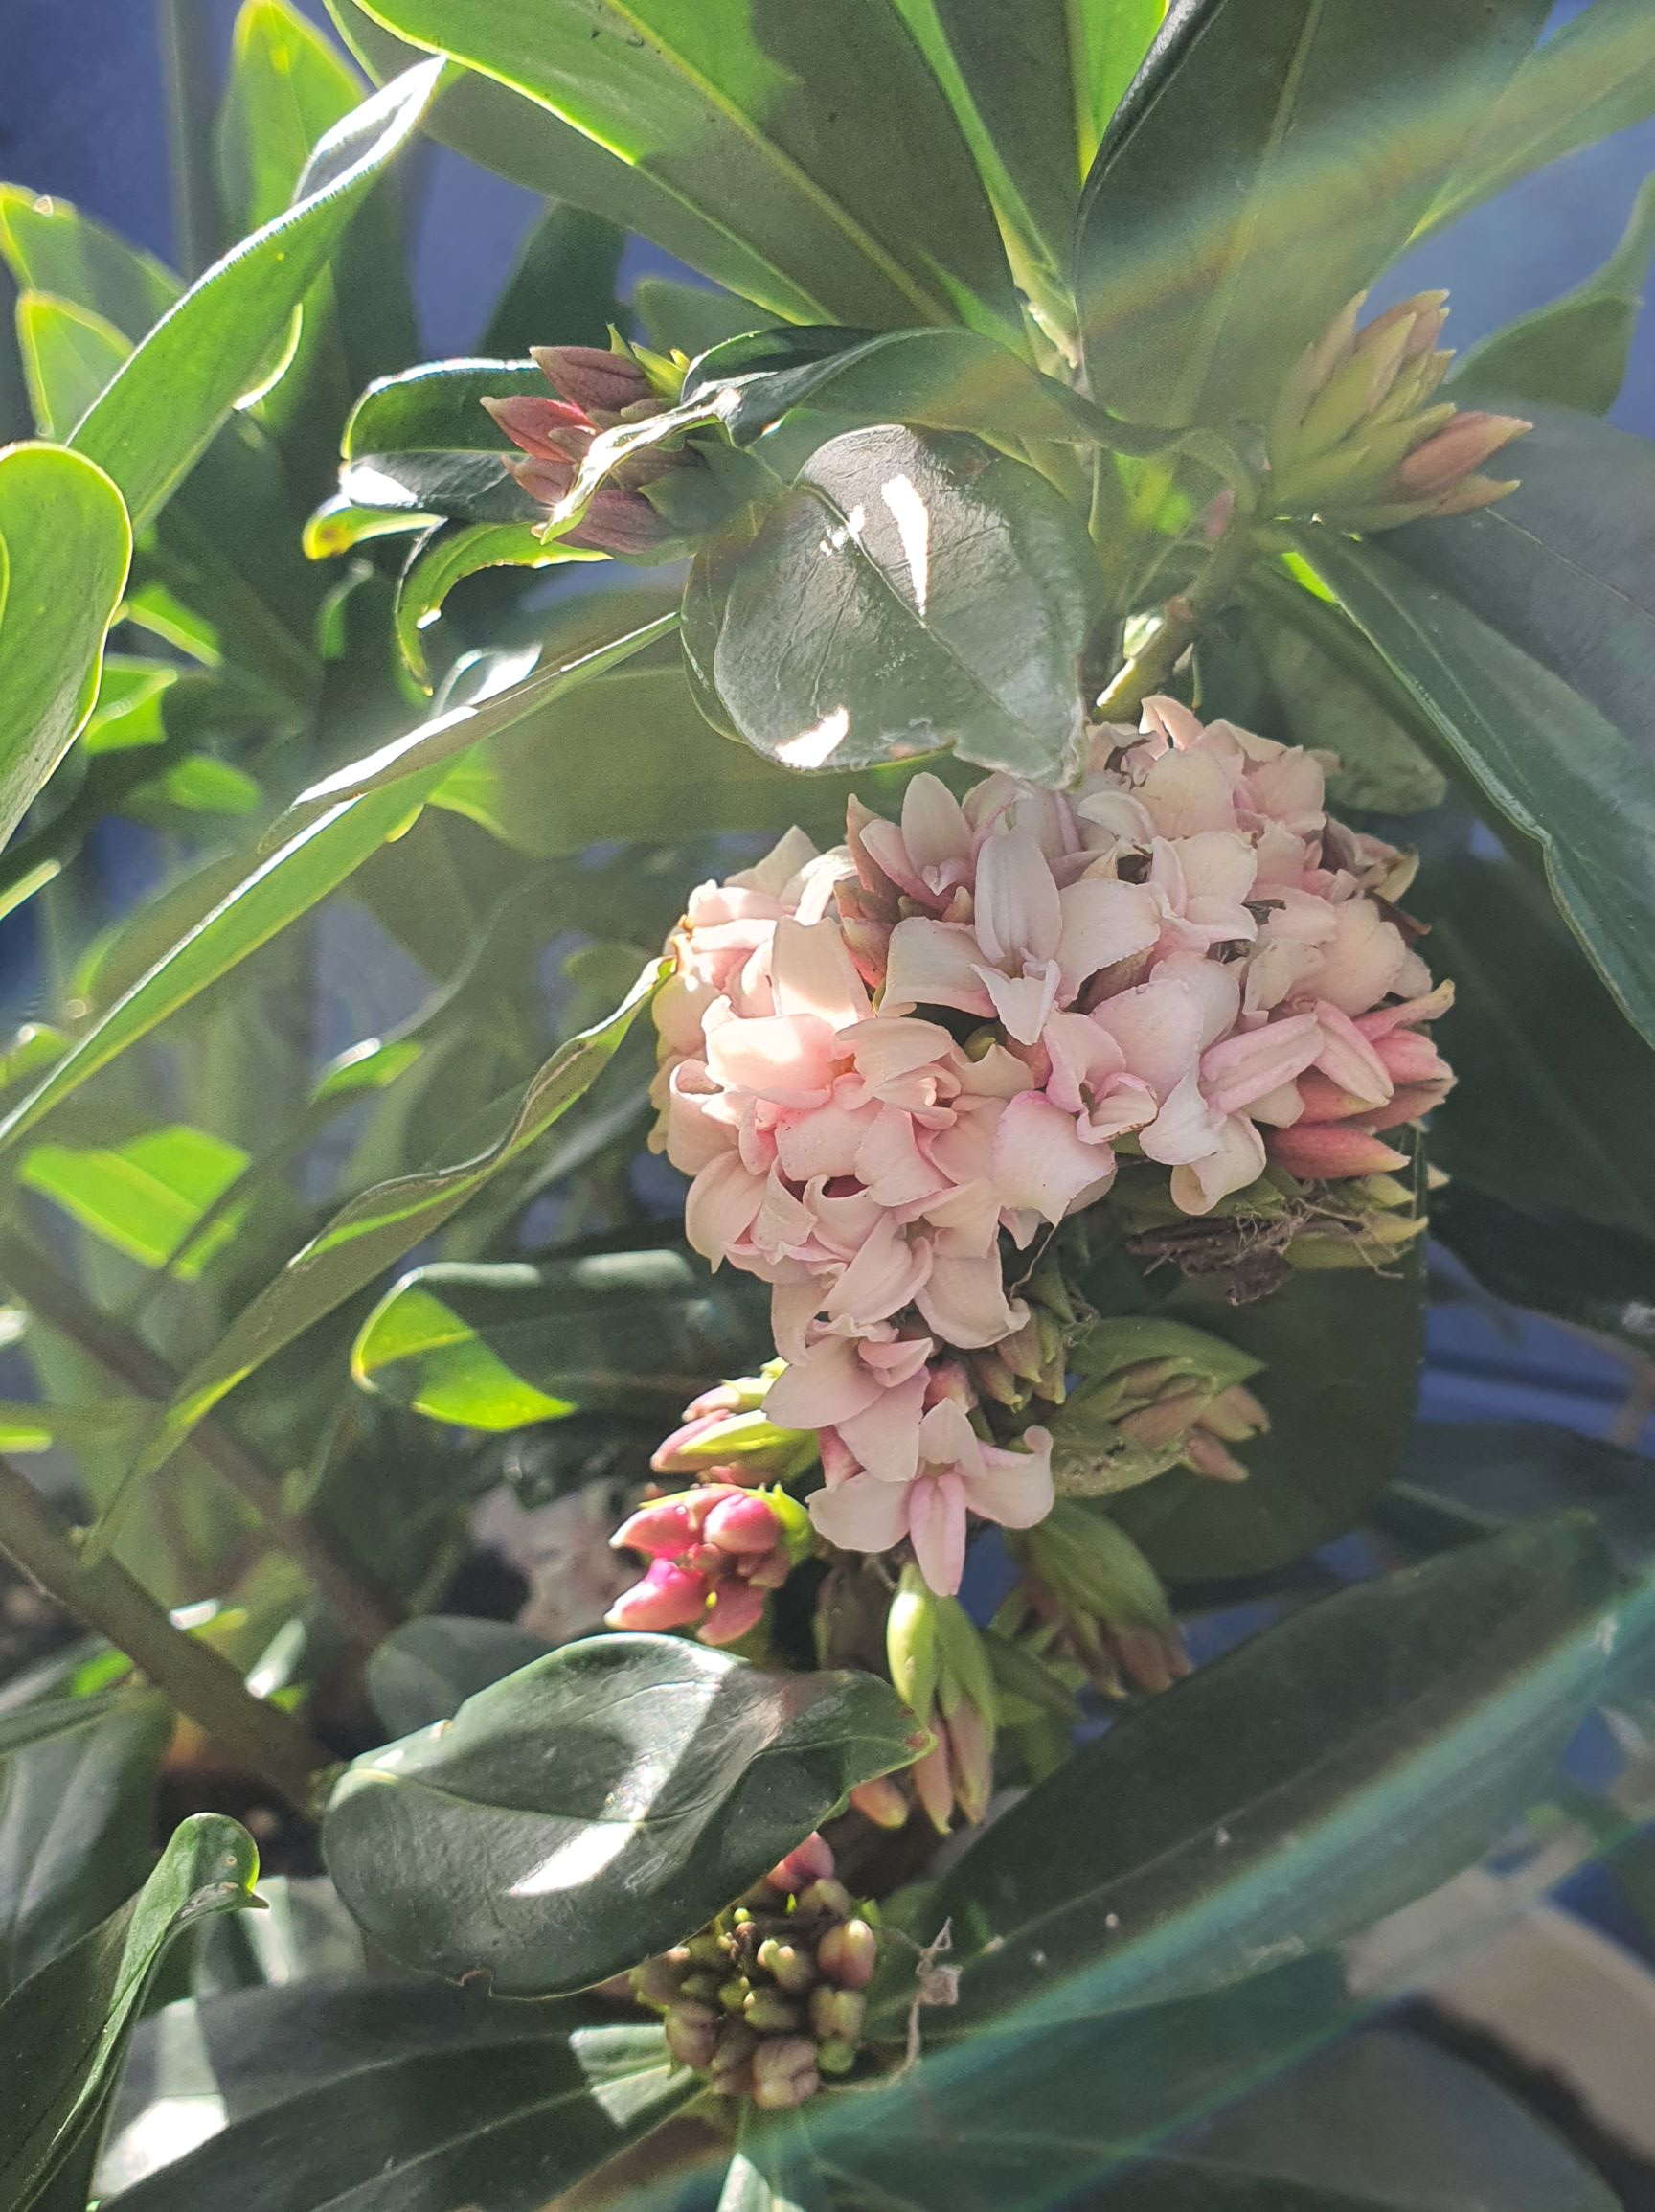 Daphne - a blessing in winter